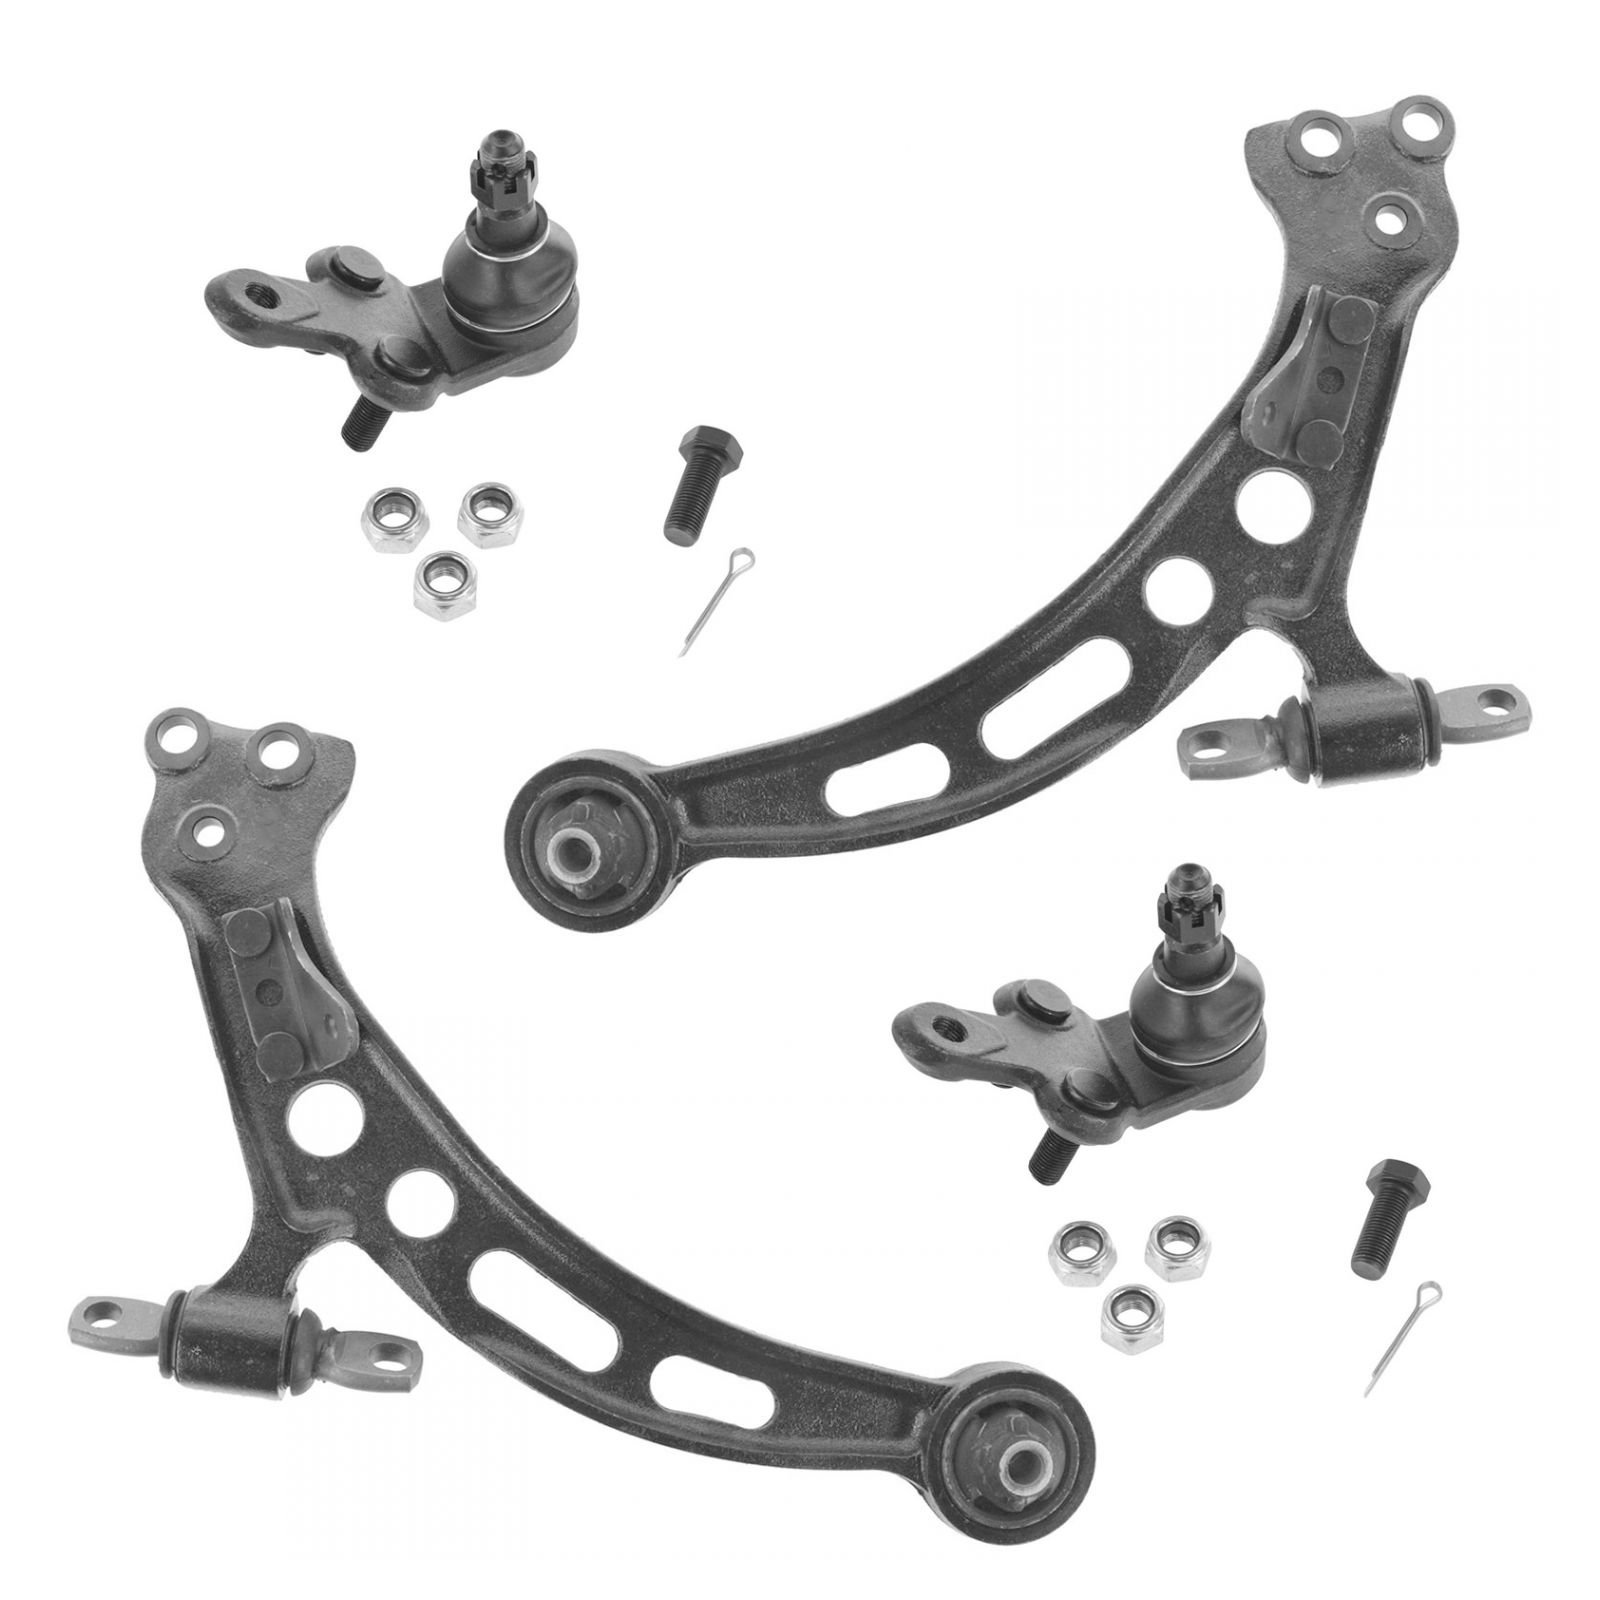 Front Lower Control Arms w/Ball Joint Kit Set of 2 for ES300 Avalon Camry